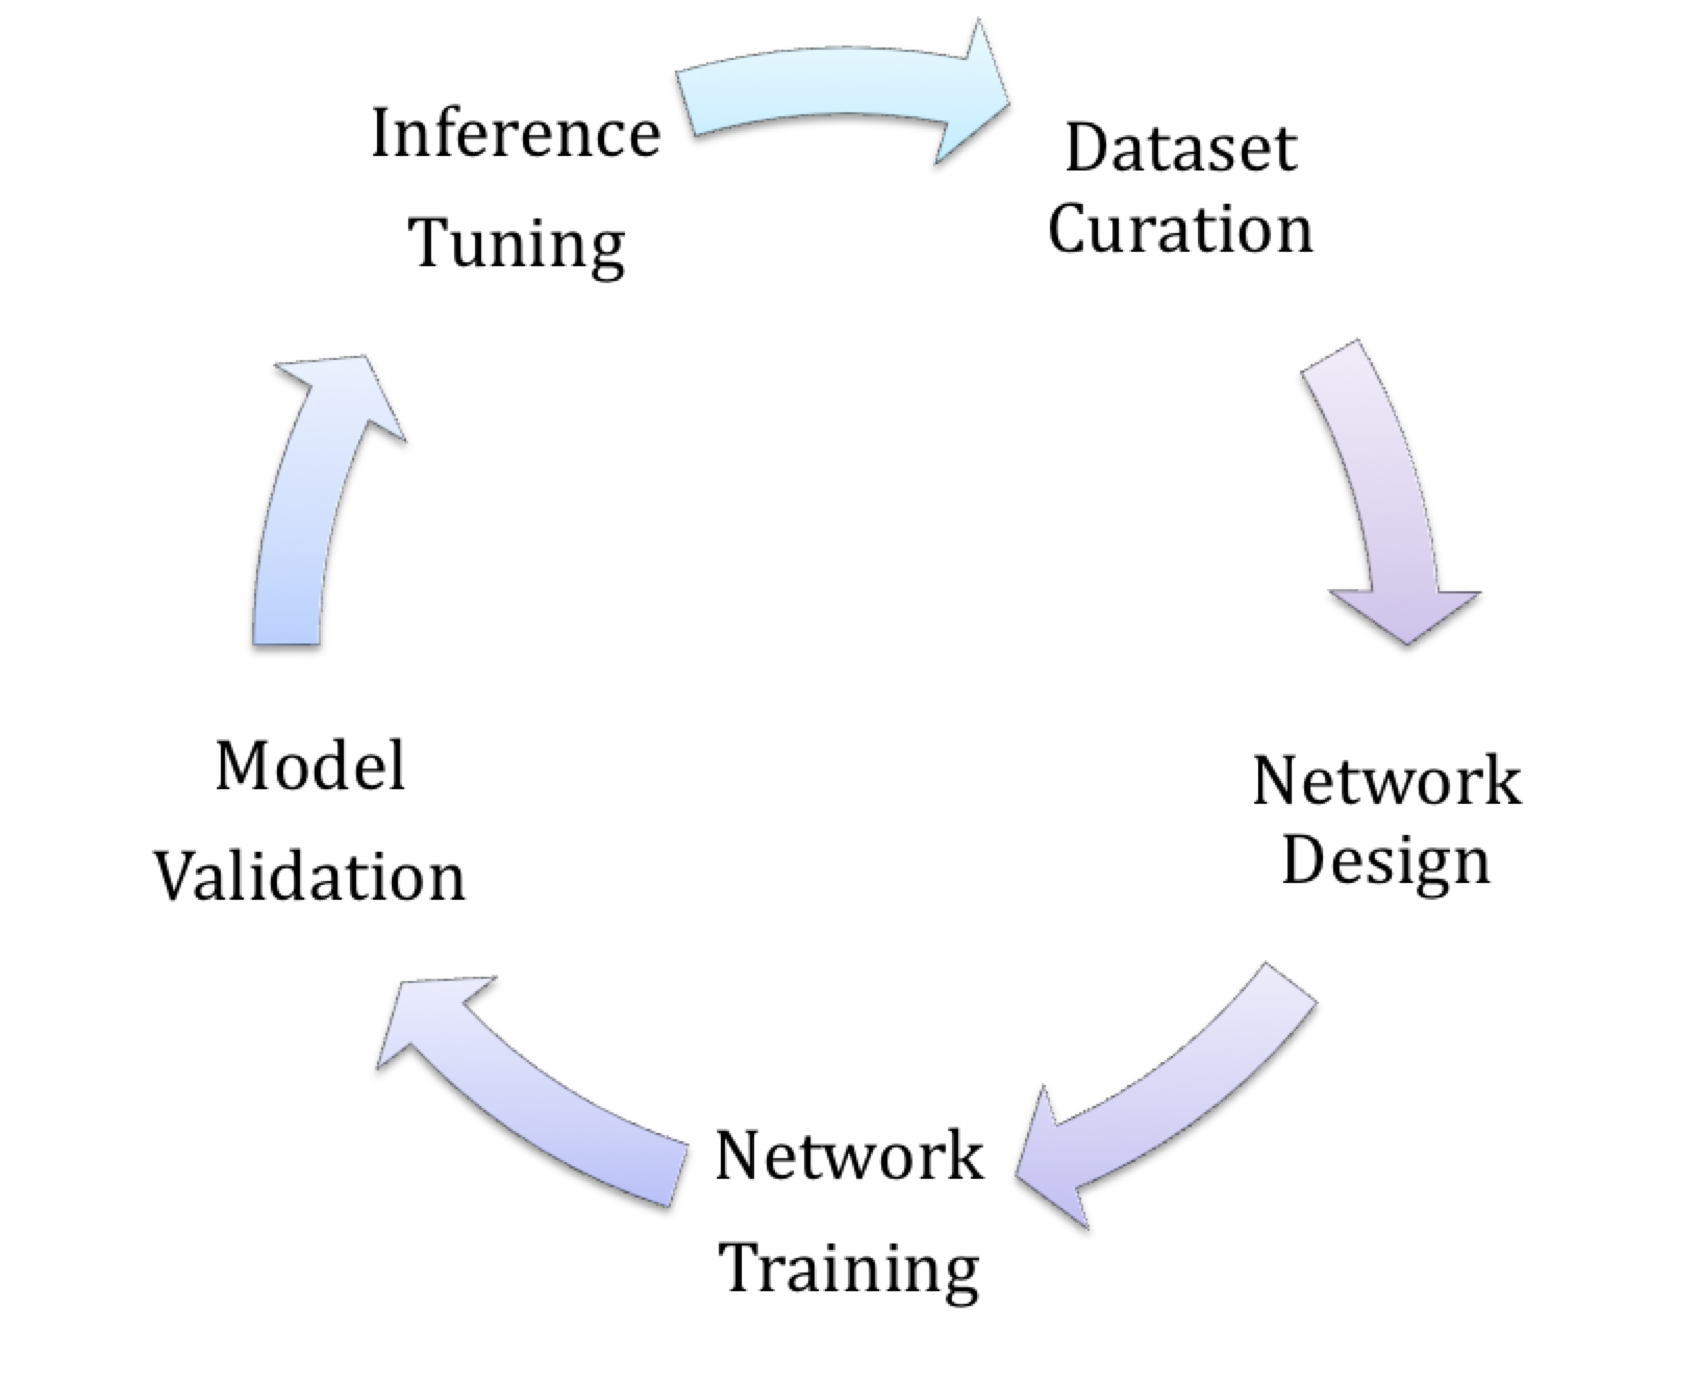 Software Frameworks And Toolsets For Deep Learning Based Vision Download Matlab Tutorial Digital Circuit Analysis Design With The First Five Of Six Total Stages A Typical Project Are Frequently Iterated Multiple Times In Striving An Optimal Implementation